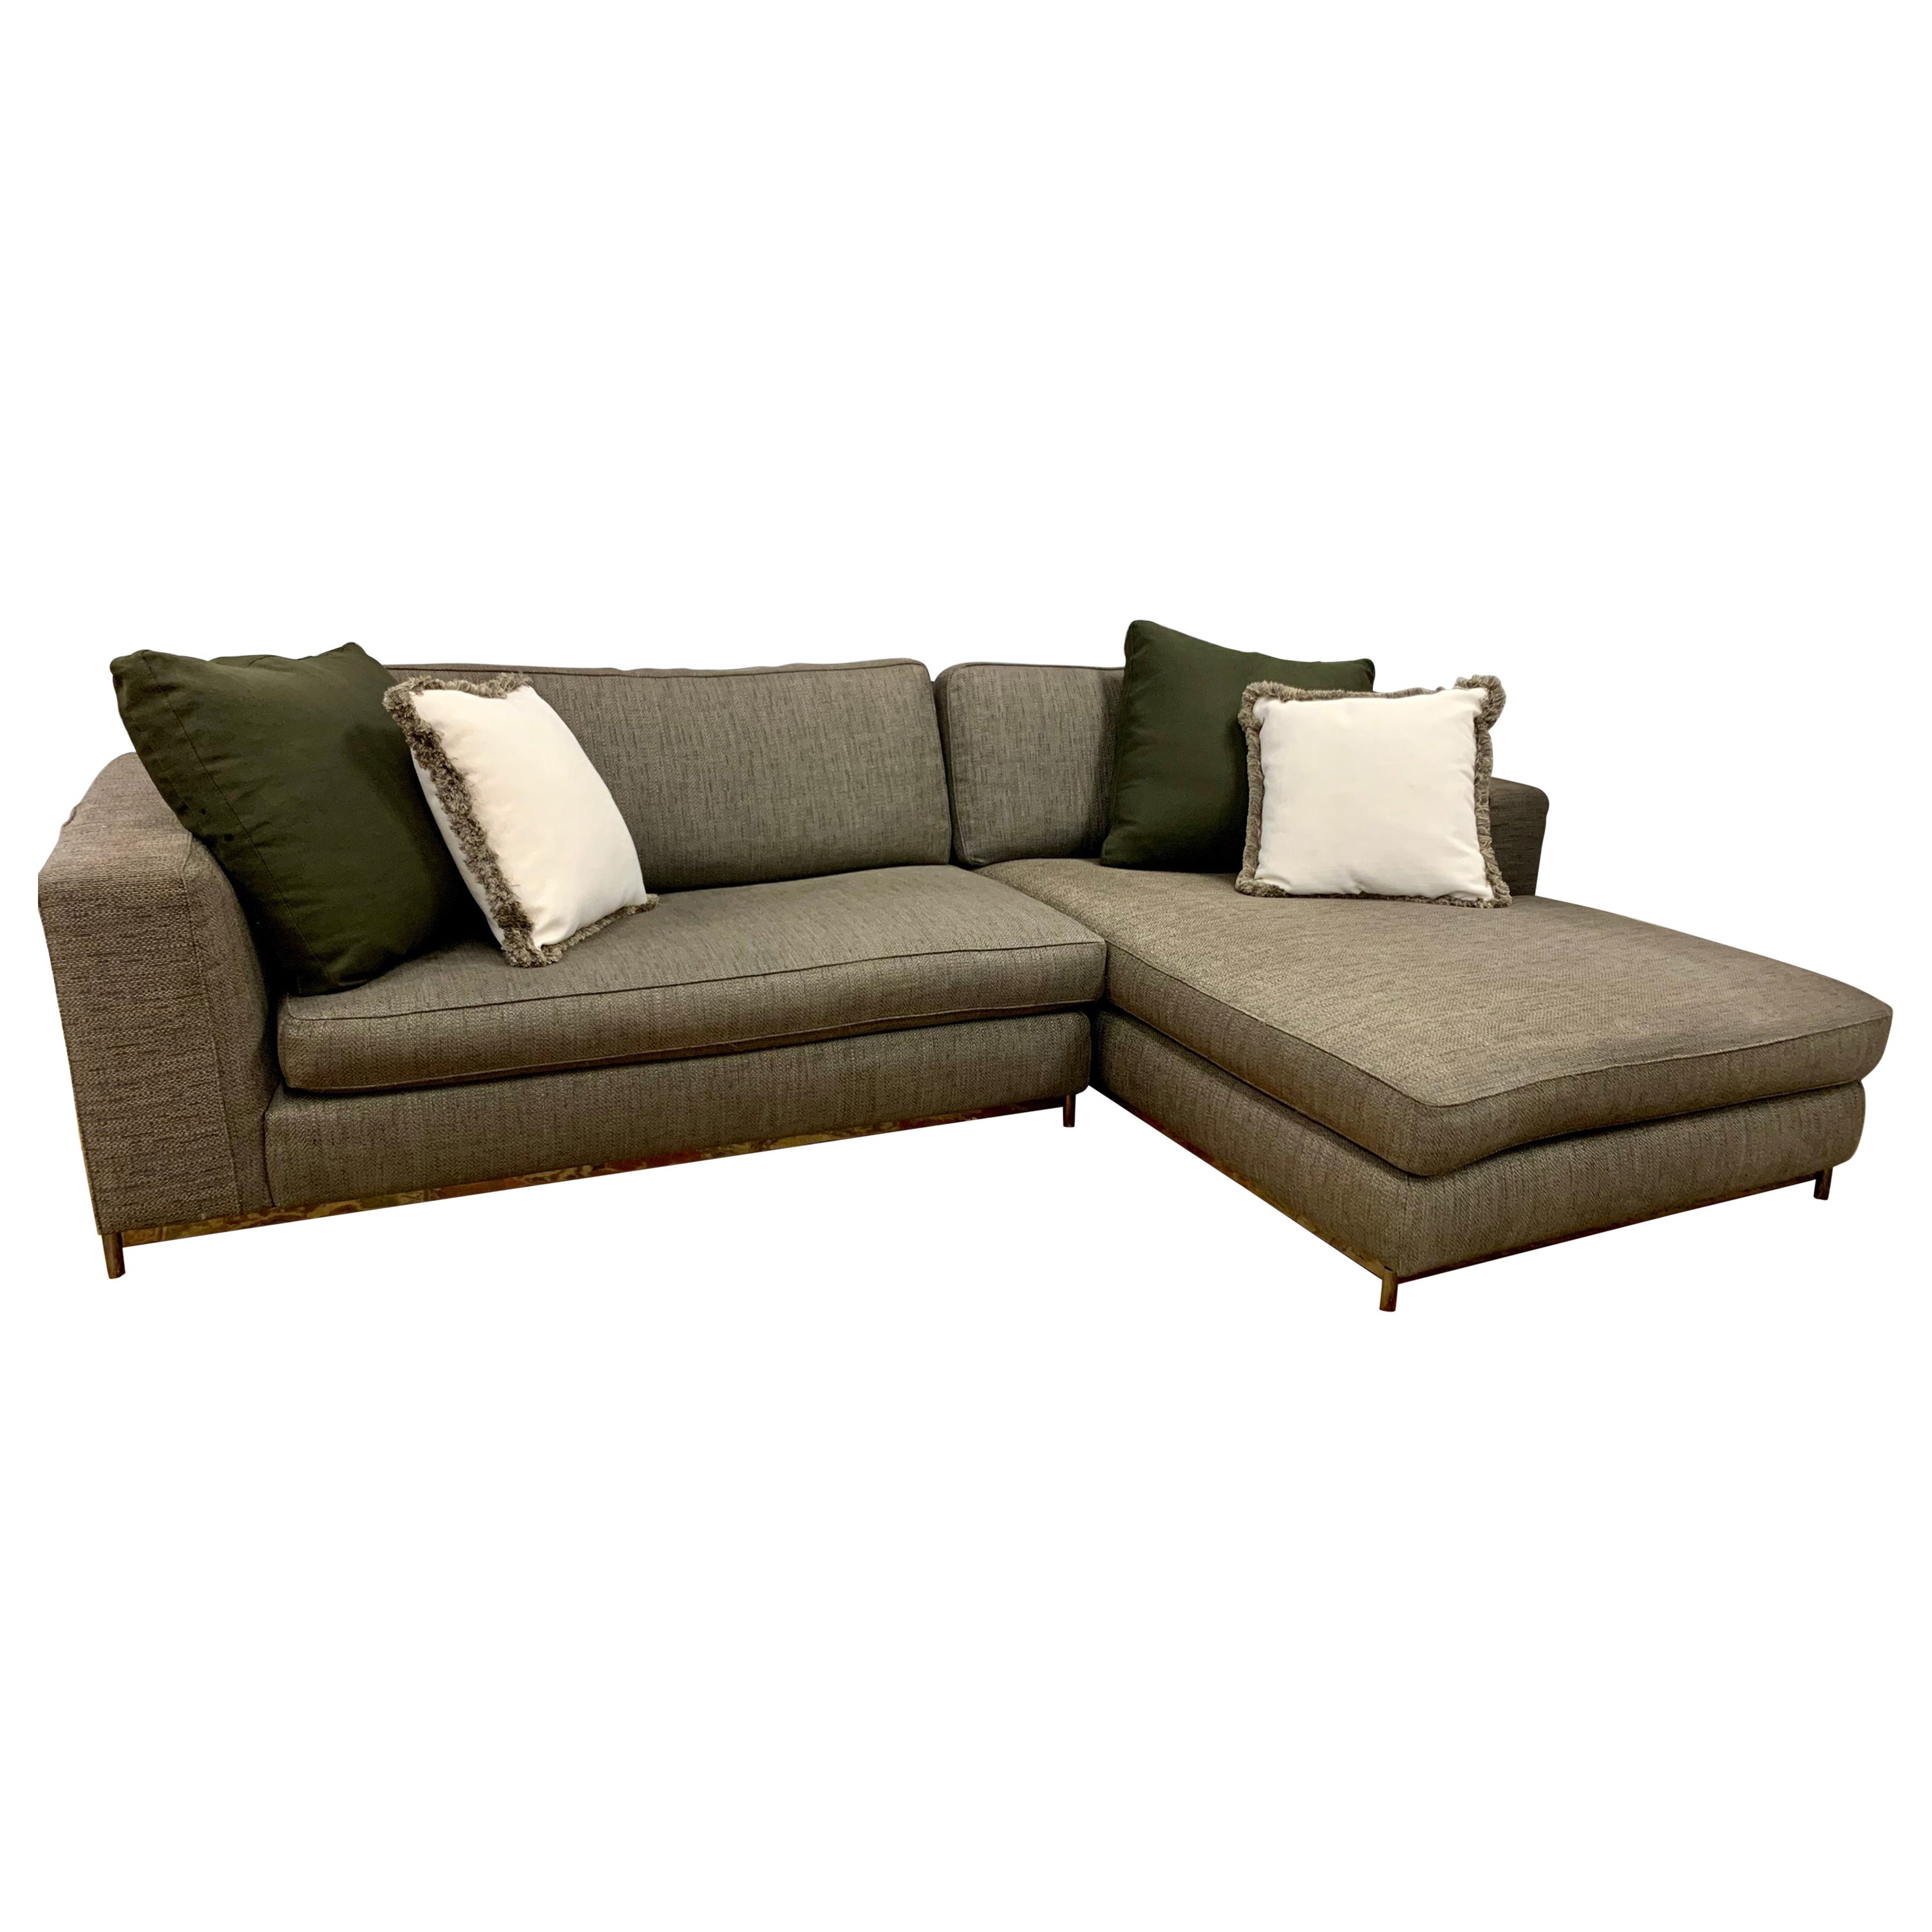 Minotti Signed Two-Piece Sectional Sofa Made in Italy